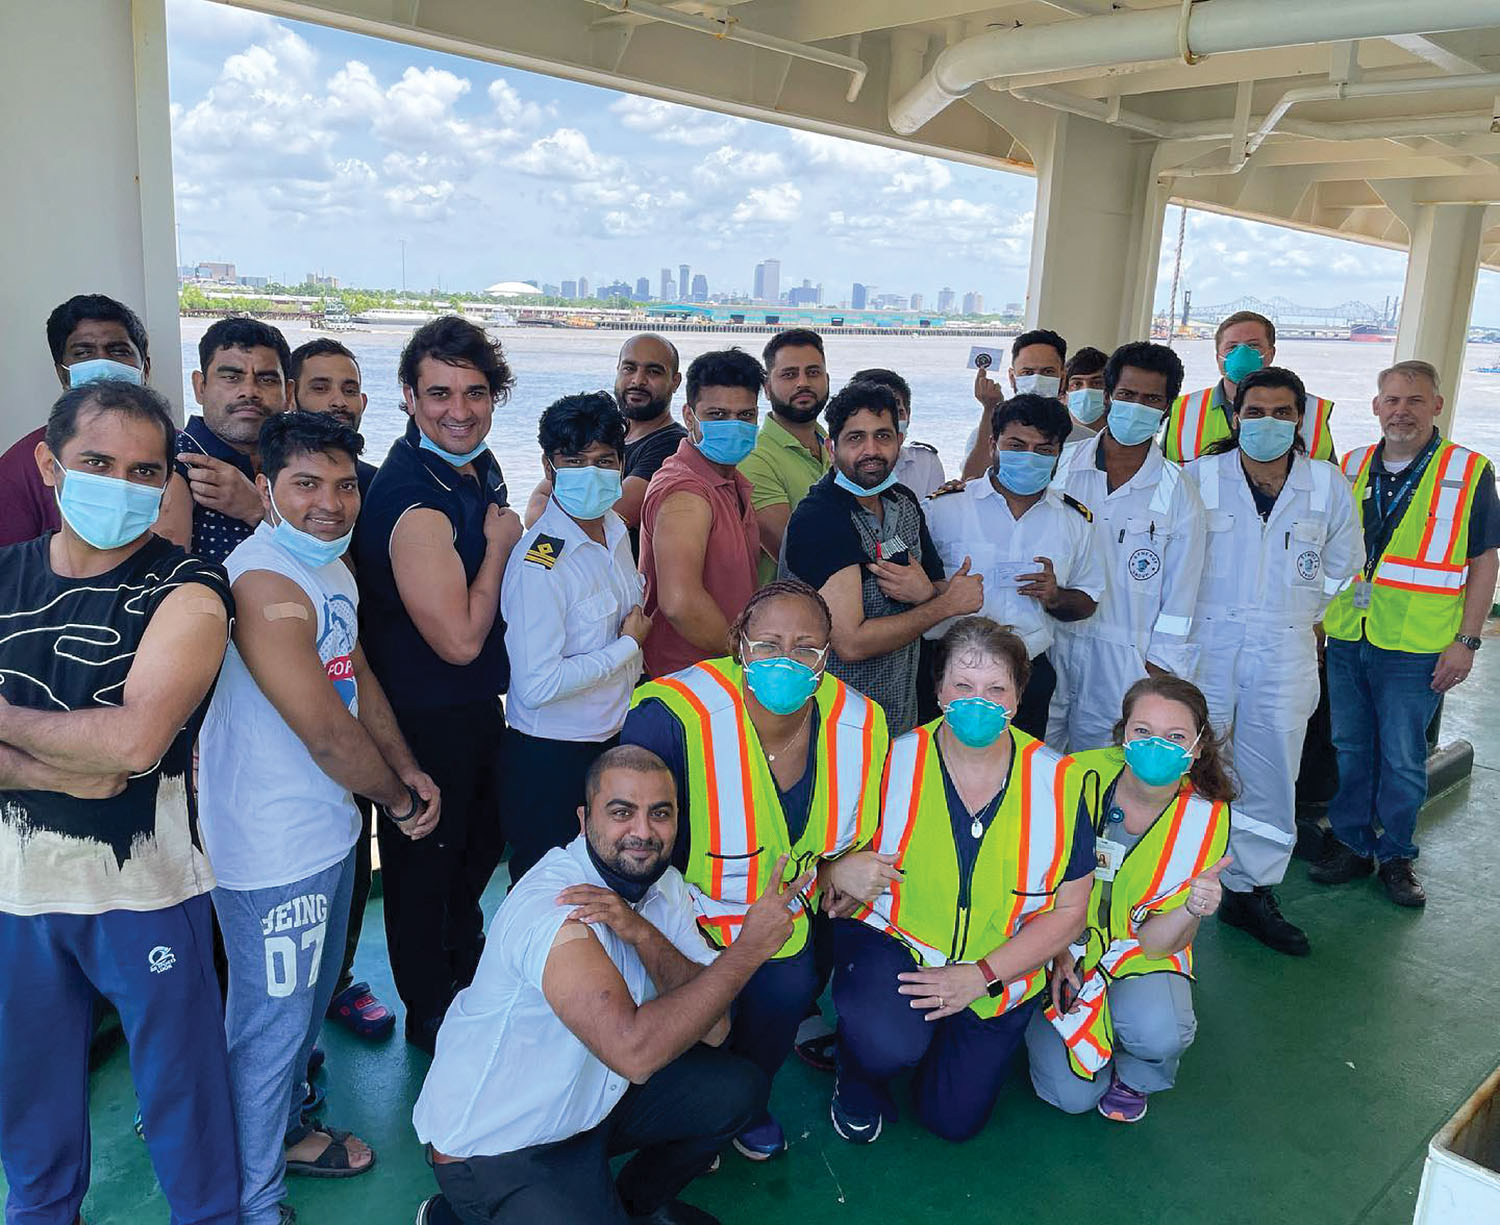 Representatives of Baptist Community Health Services and Global Maritime Ministries, alongside a cargo ship's crew, celebrate a successful mobile health clinic that brought COVID-19 vaccines to seafarers aboard their vessel.